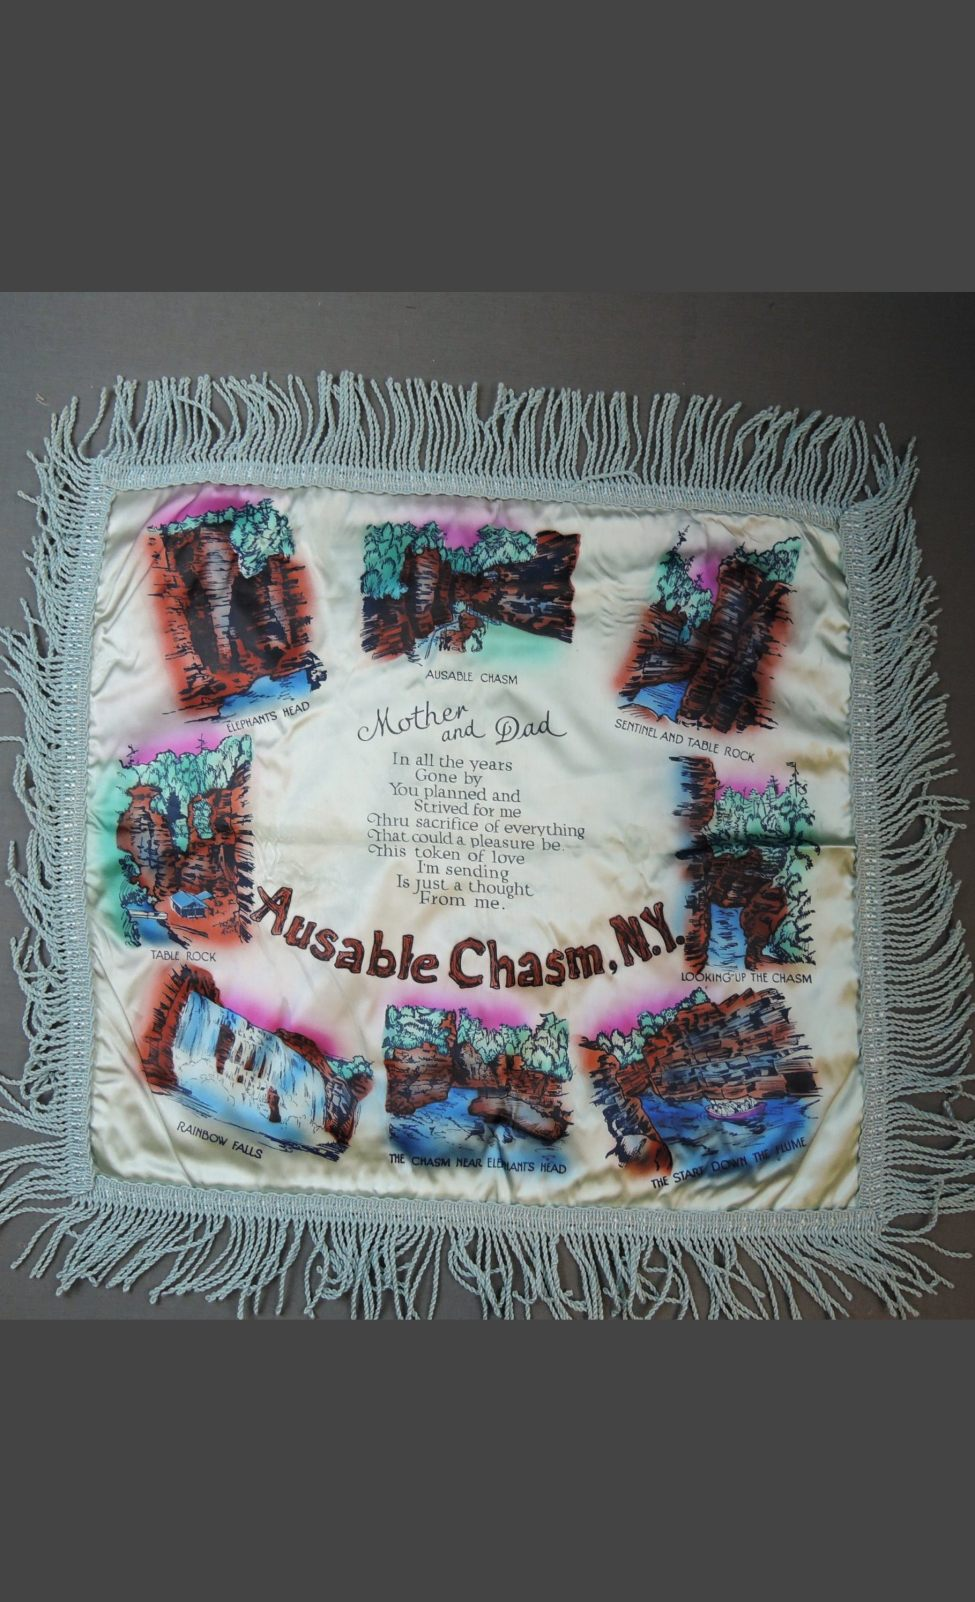 Vintage Ausable Chasm NY 1940s Satin Pillow Cover with Fringe, Souvenir, unused